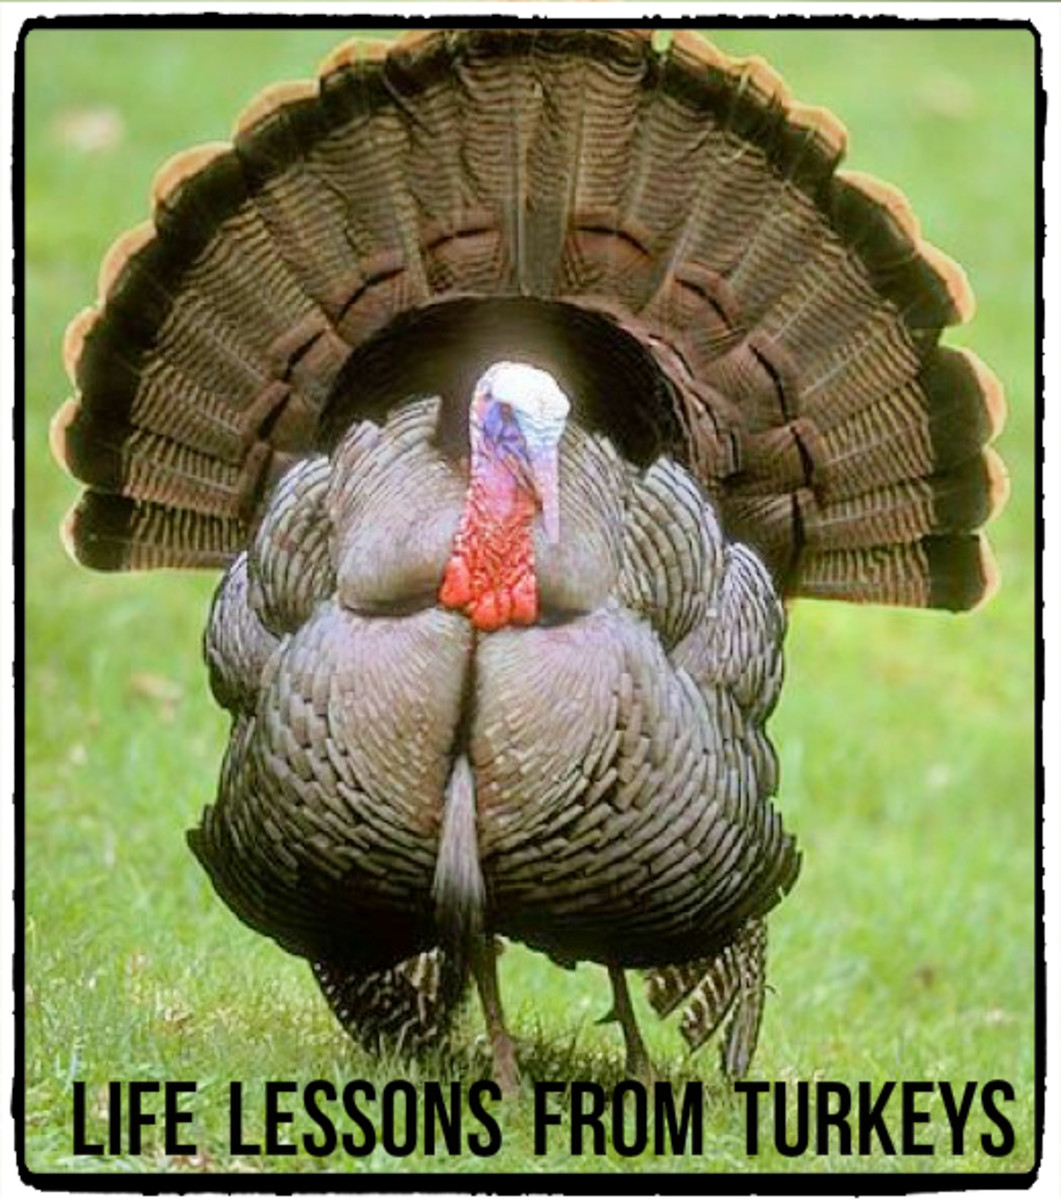 What Turkeys Can Teach Us About Being Human